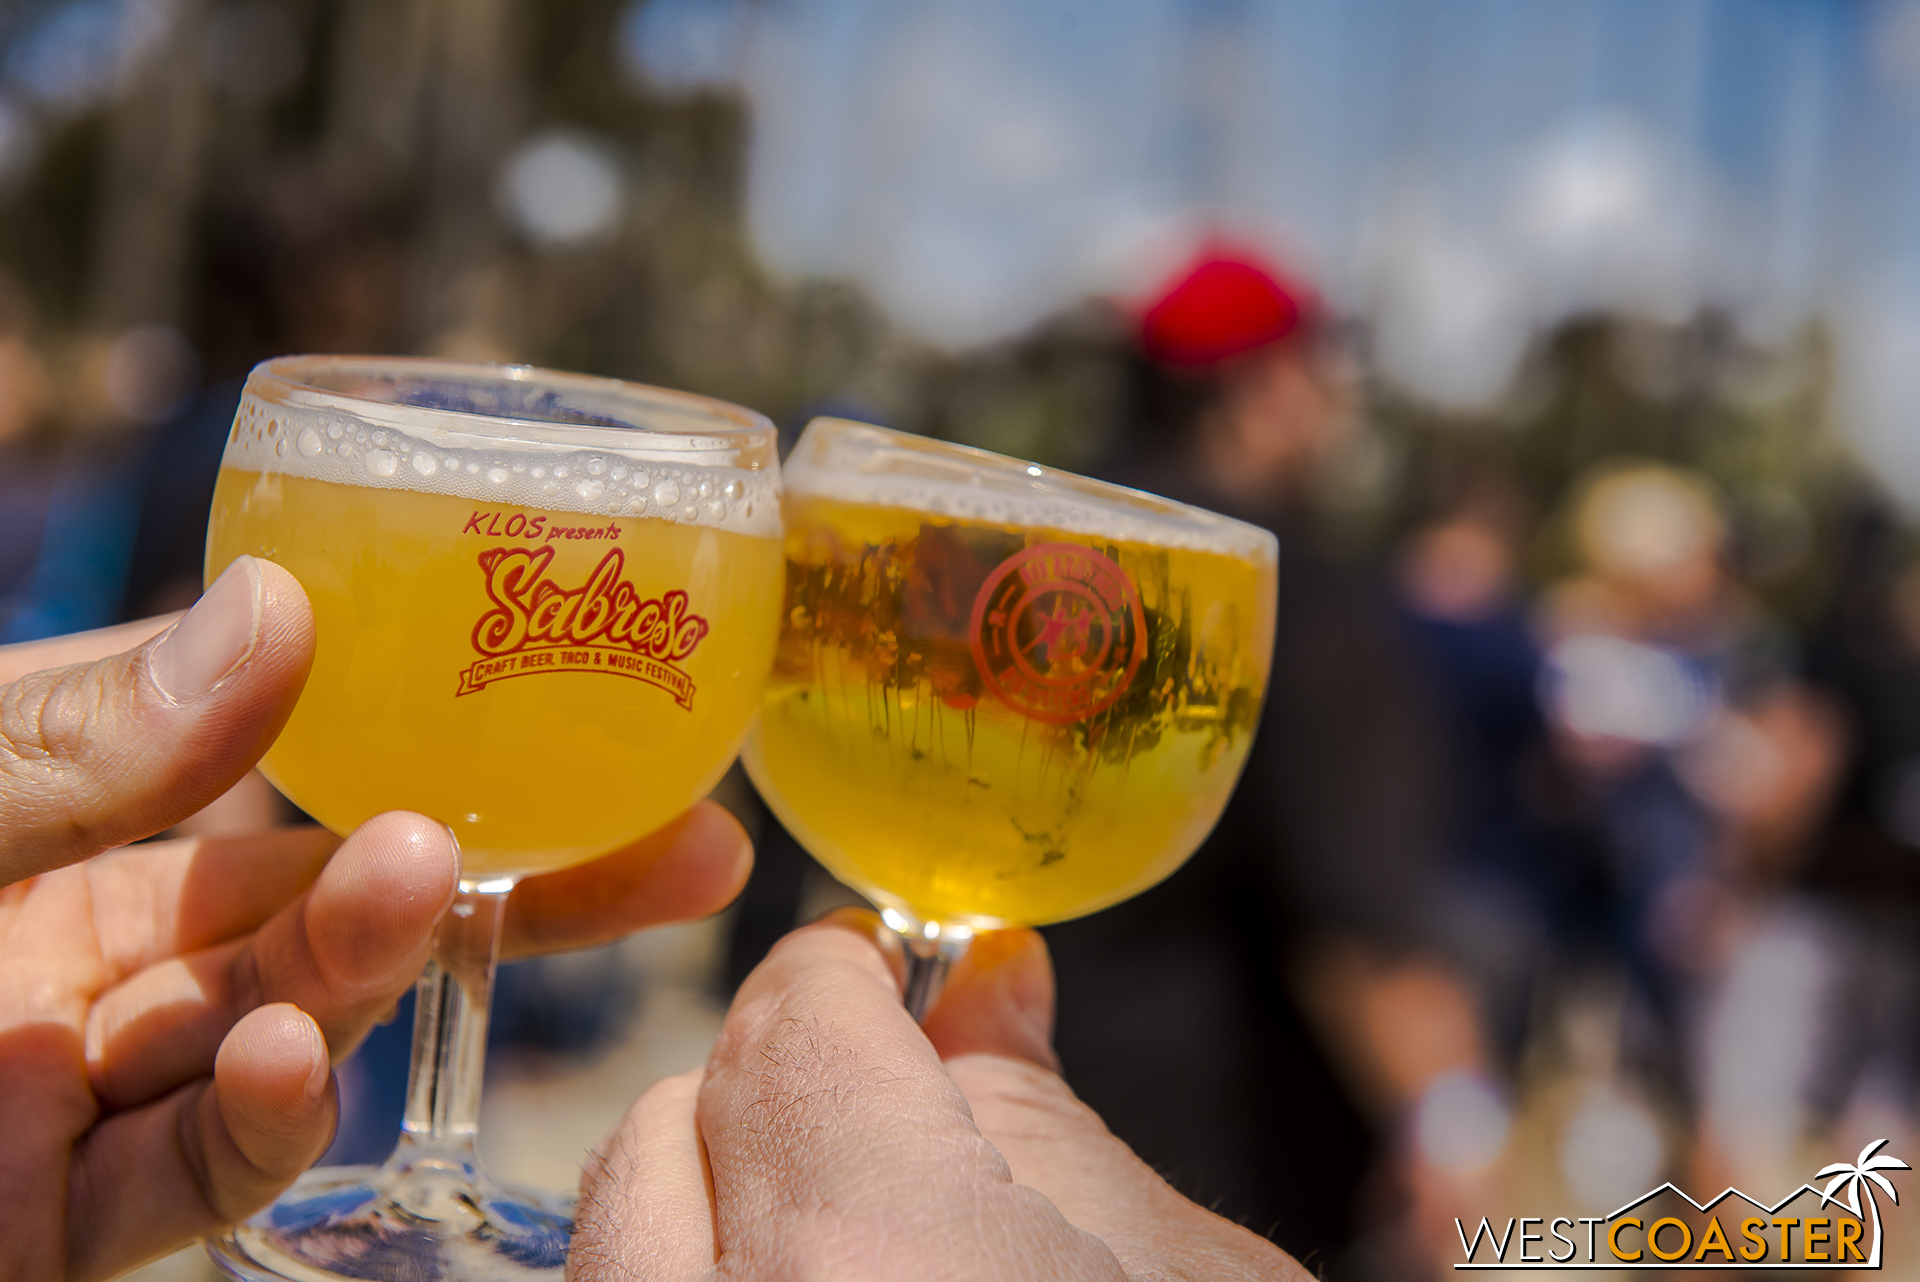 Free beer tastings were available starting at noon for VIP guests and 1:00pm for general admission guests until 4:00pm.